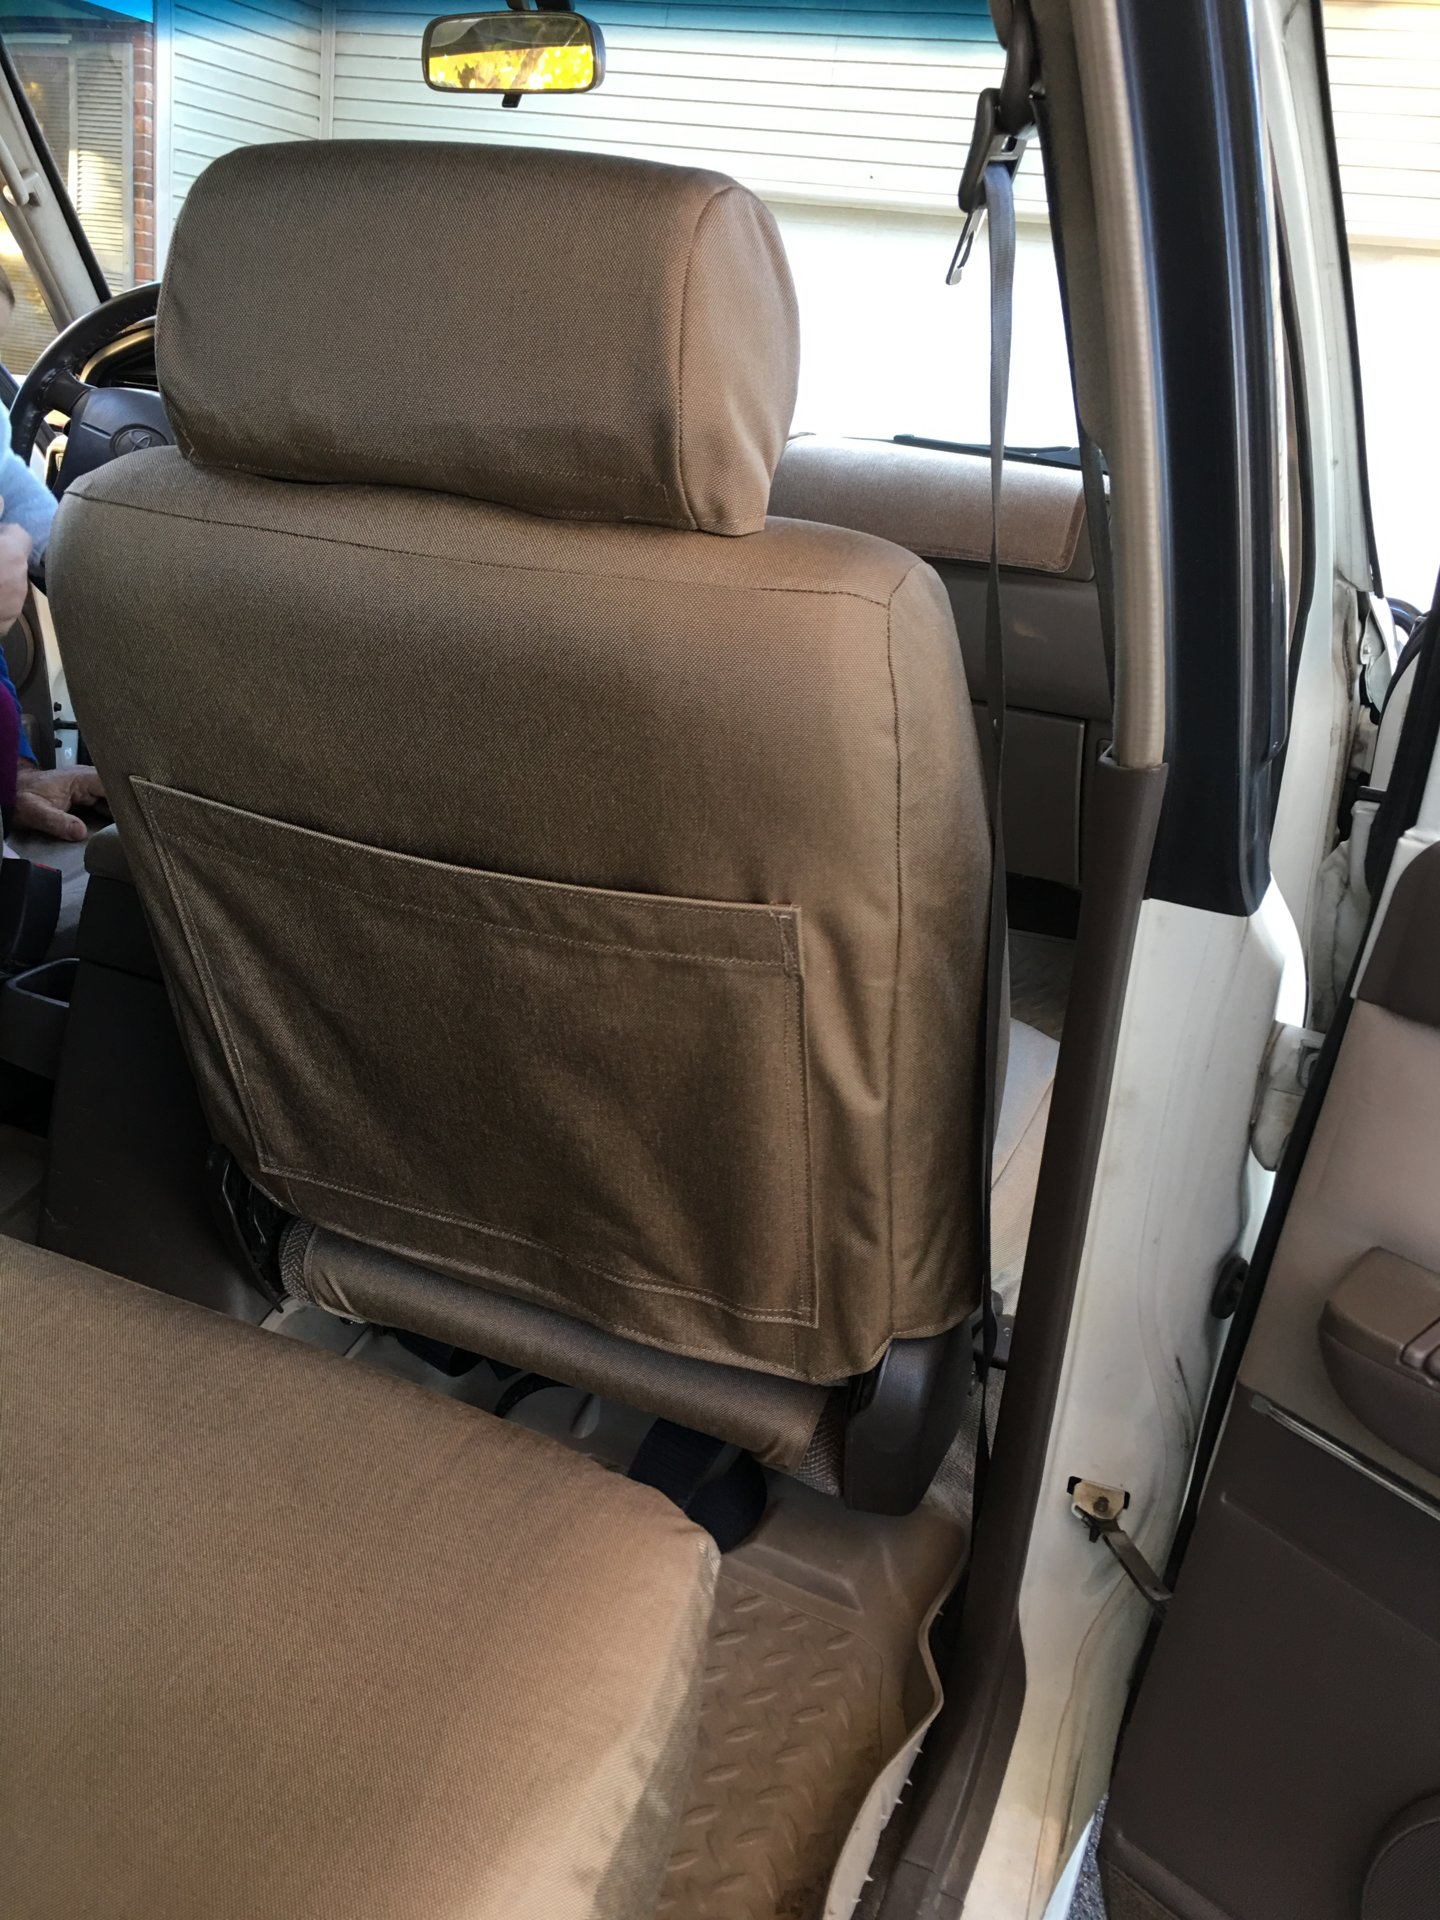 Superhides Seat Covers >> Marathon Seat Covers Review Ih8mud Forum